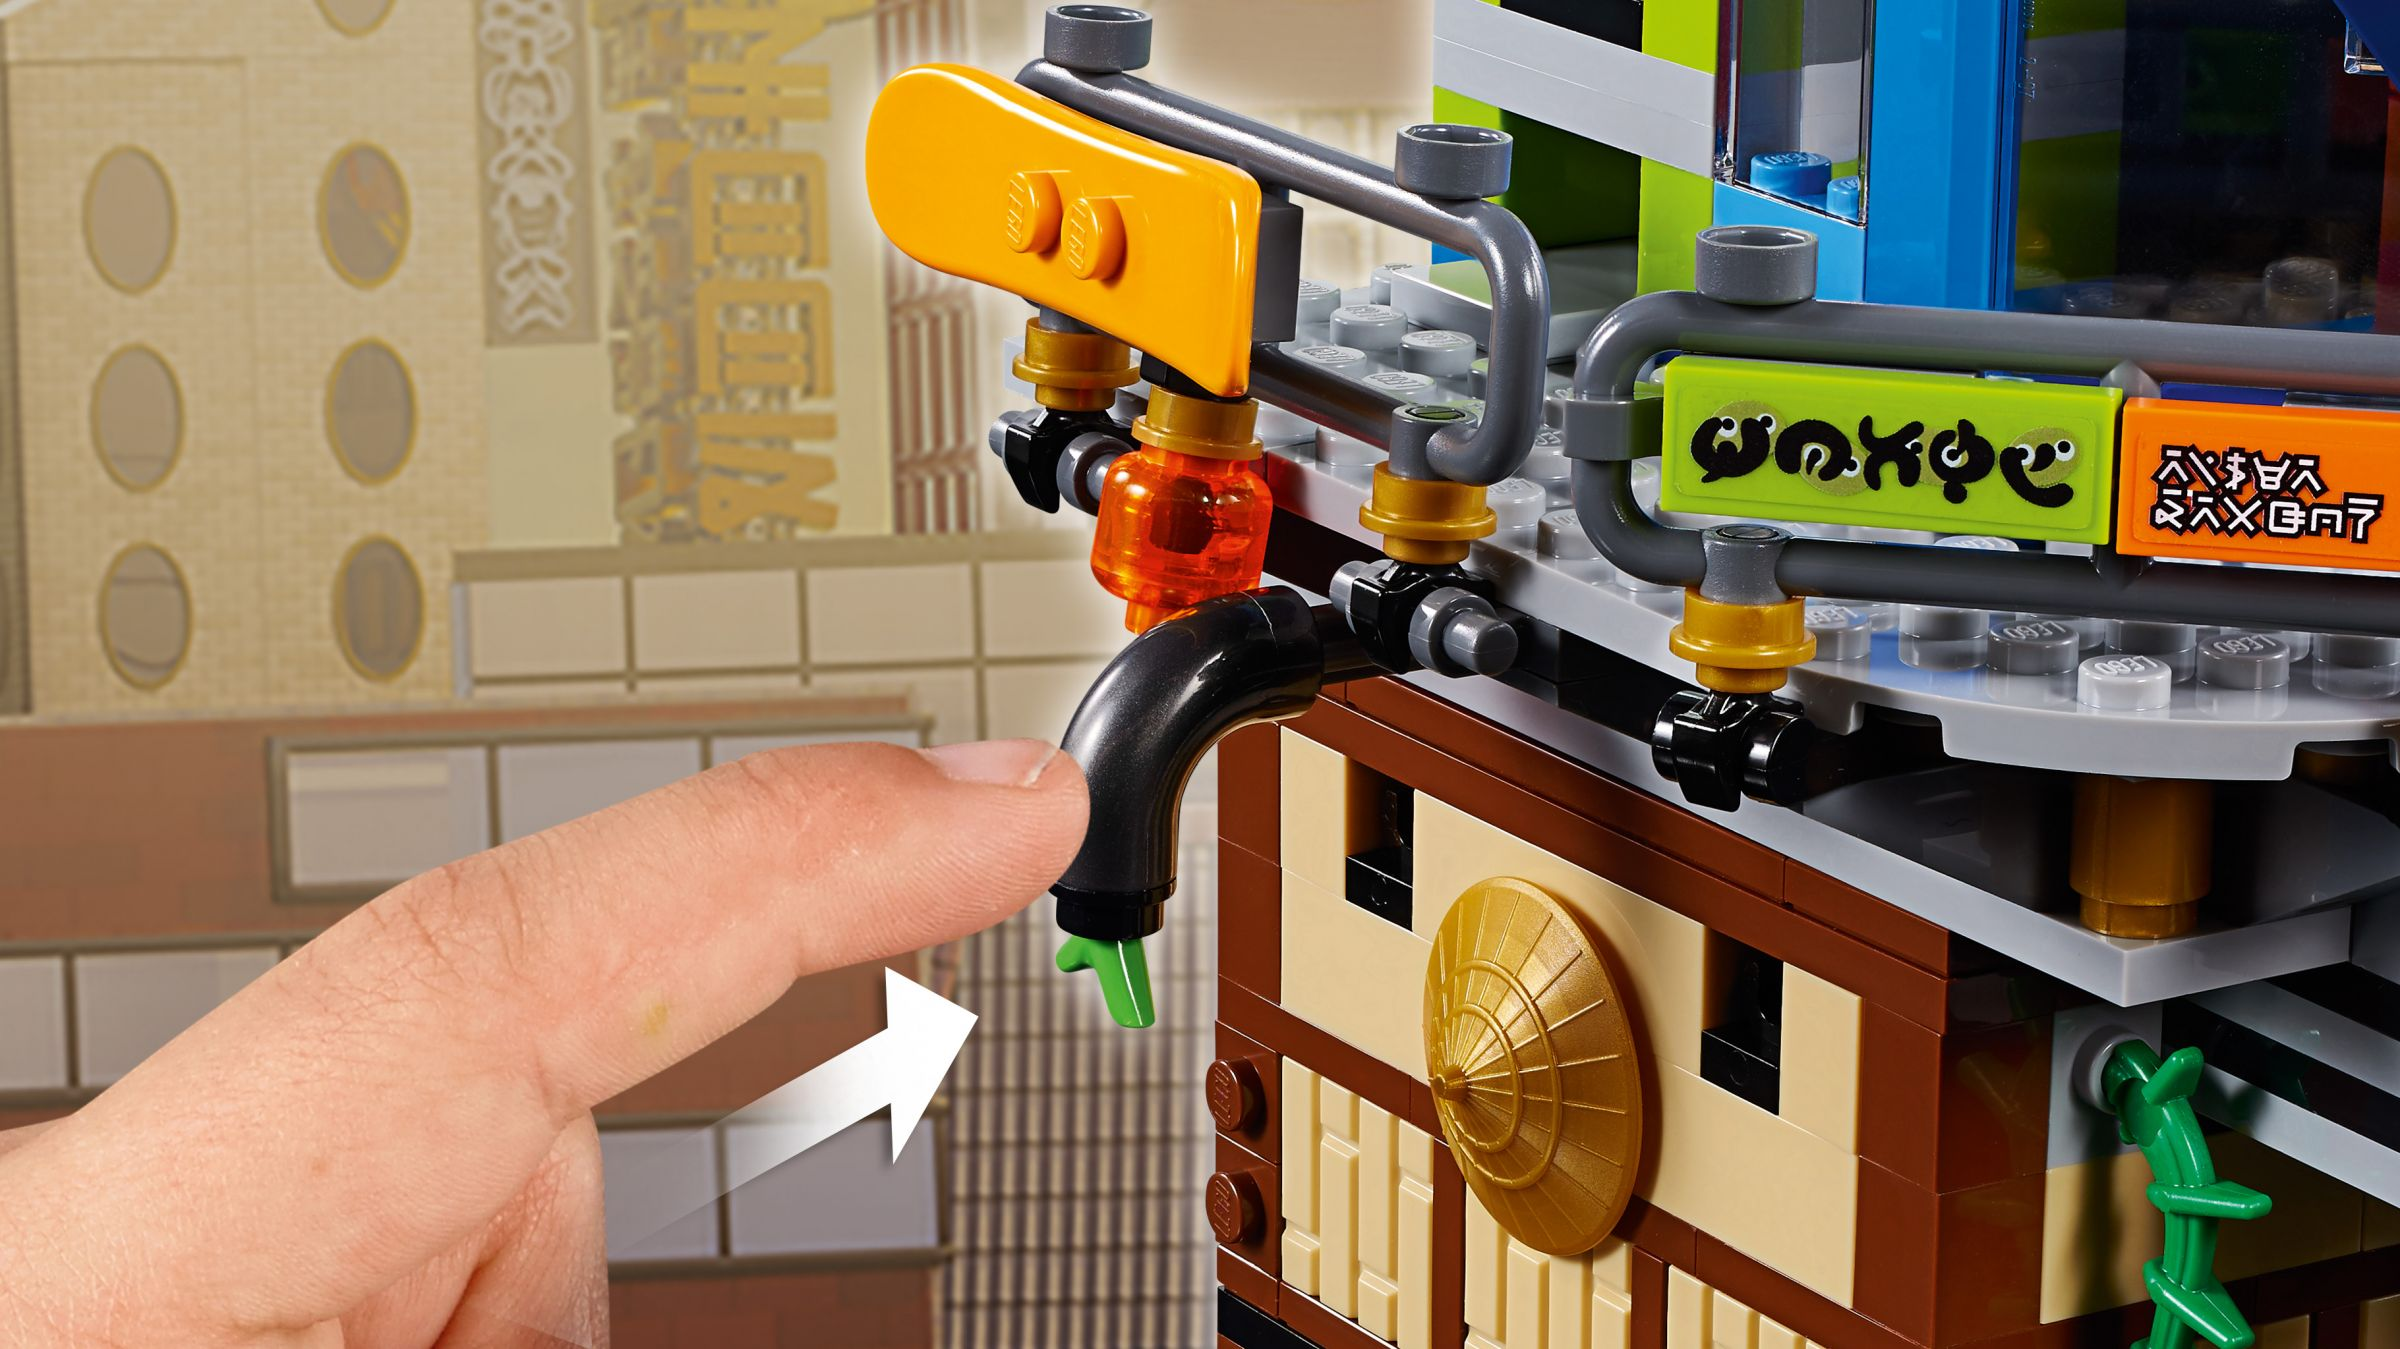 LEGO The LEGO Ninjago Movie 70657 Ninjago City Hafen LEGO_70657_Ninjago_City_Hafen_img07.jpg